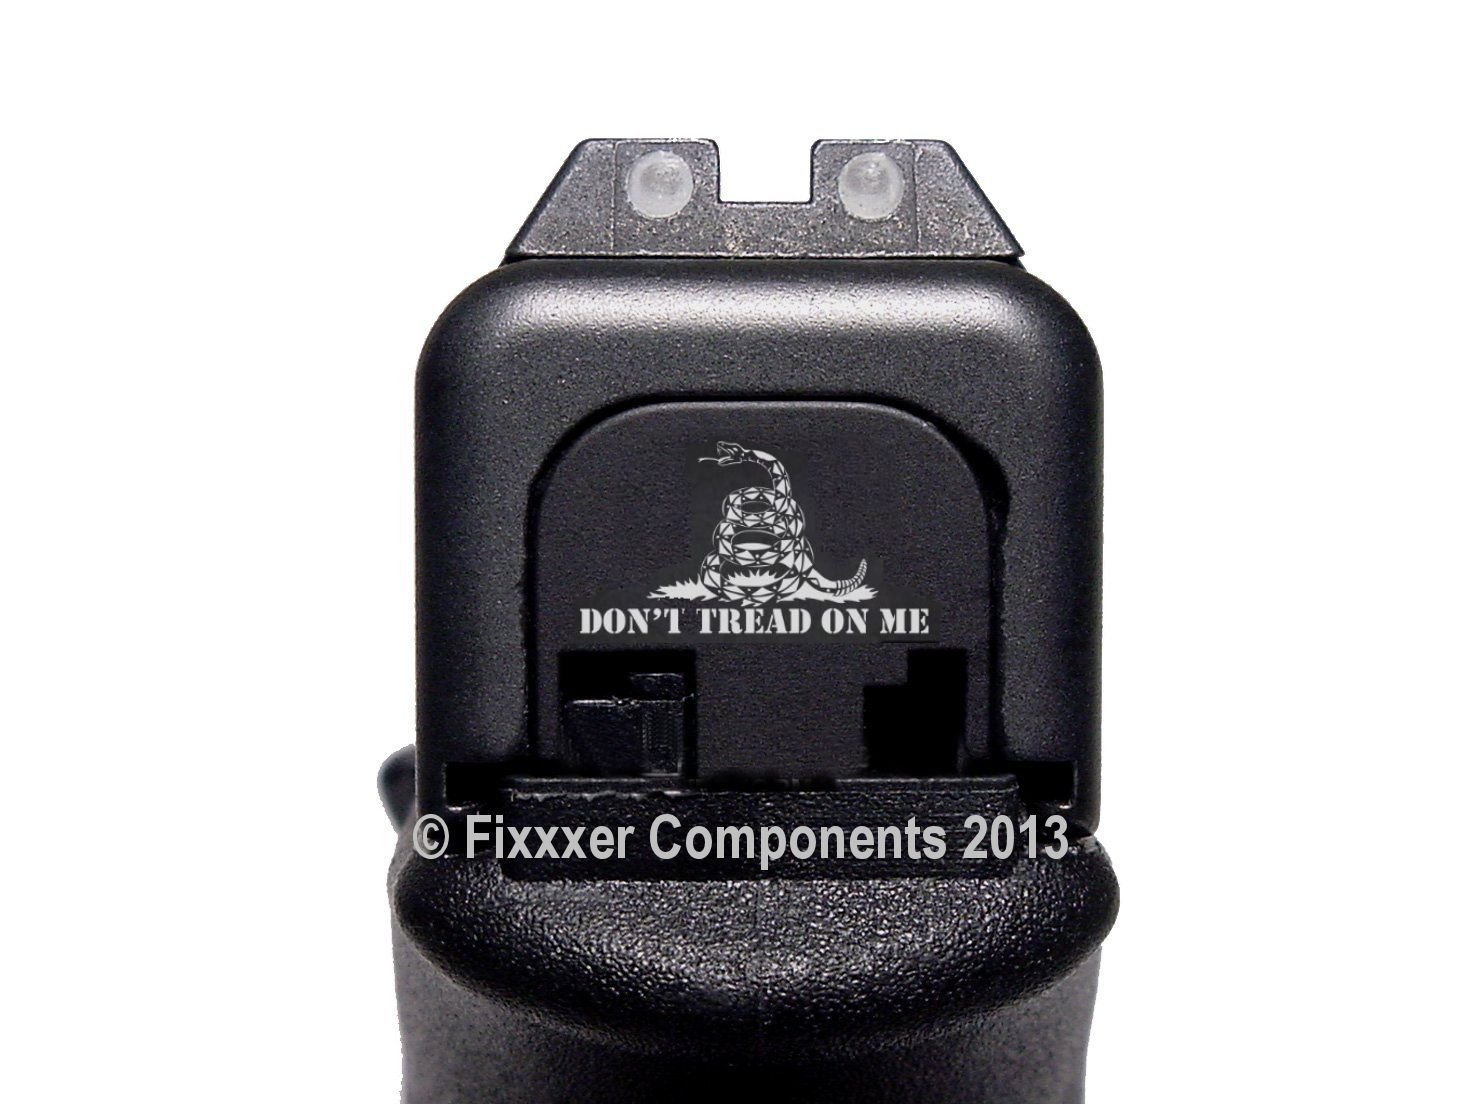 FIXXXER Rear Cover Plate for Glock (Molon Labe Helmet Design) Fits Most Models (Not G42, G43) and Generations (Not Gen 5)